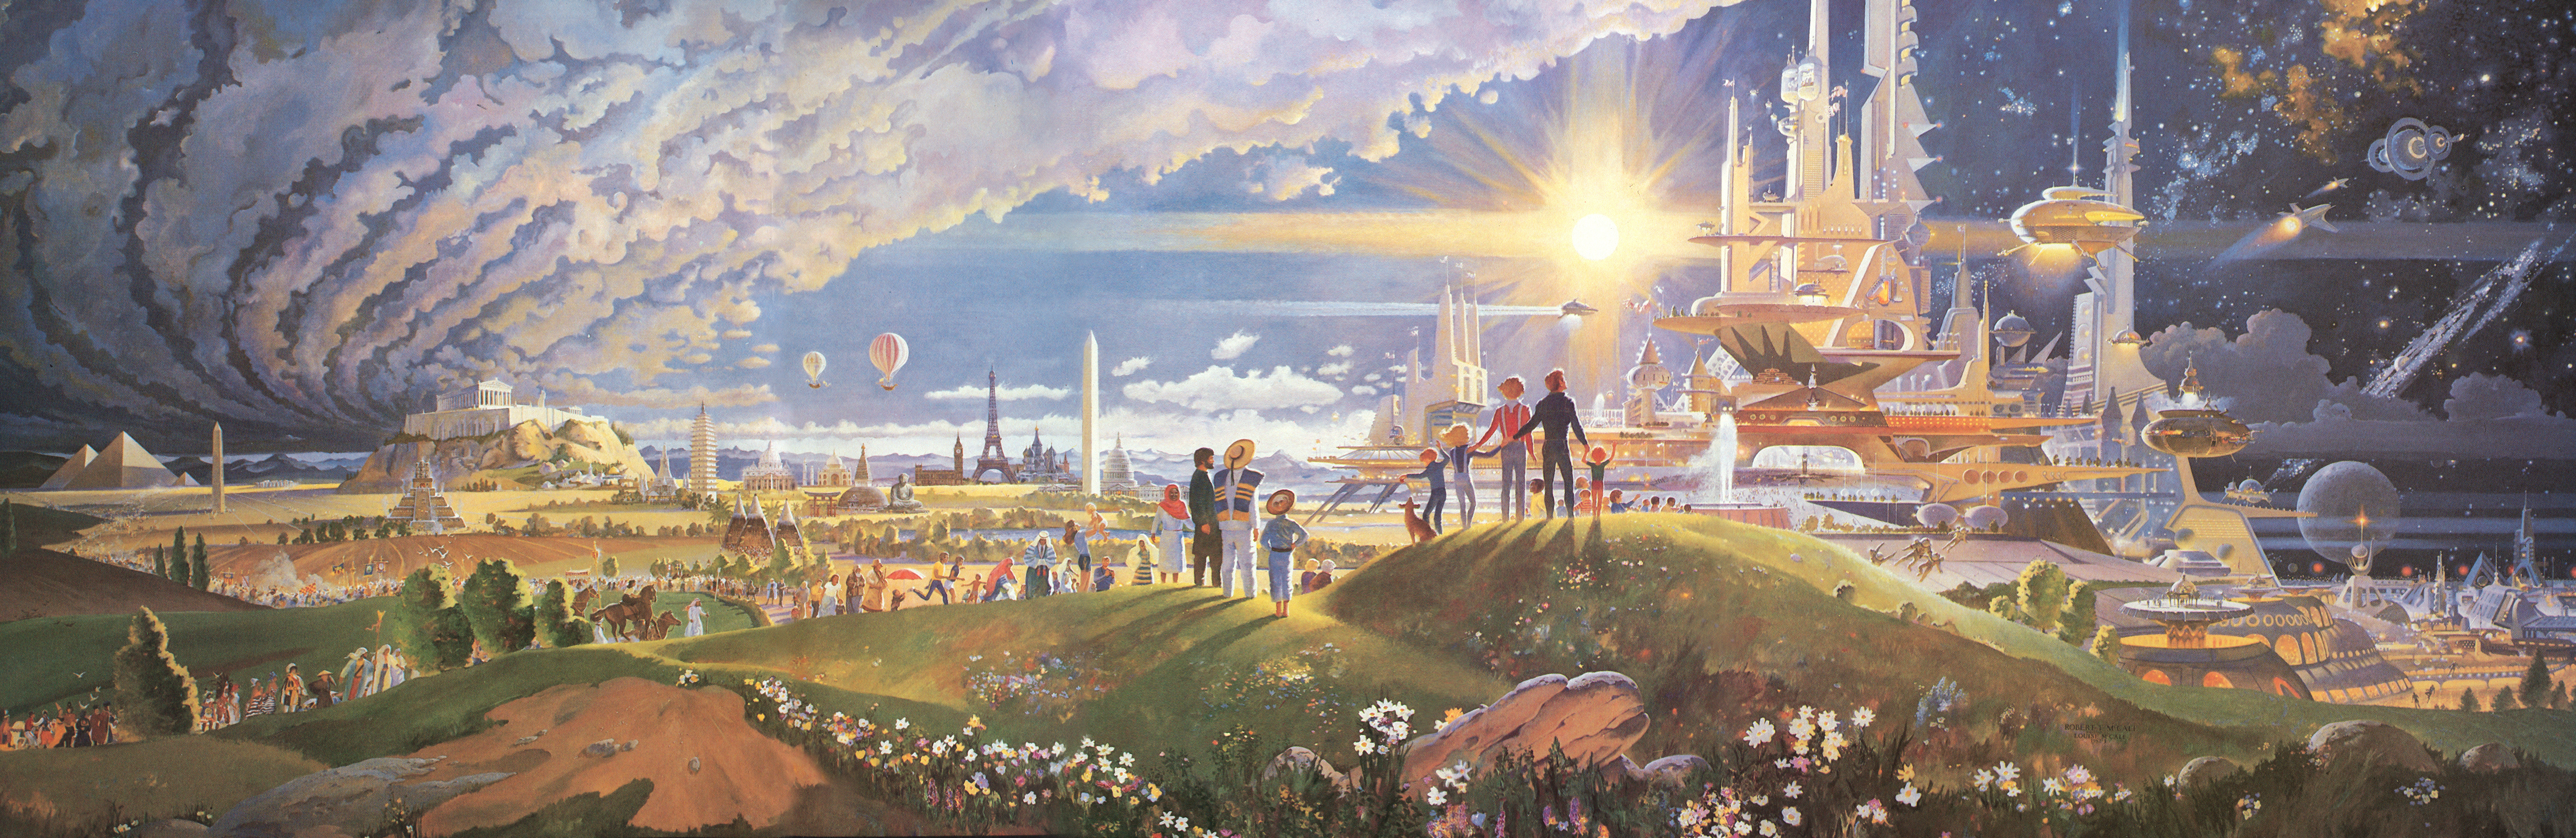 HORIZONS MURAL The Prologue And Promise High Res